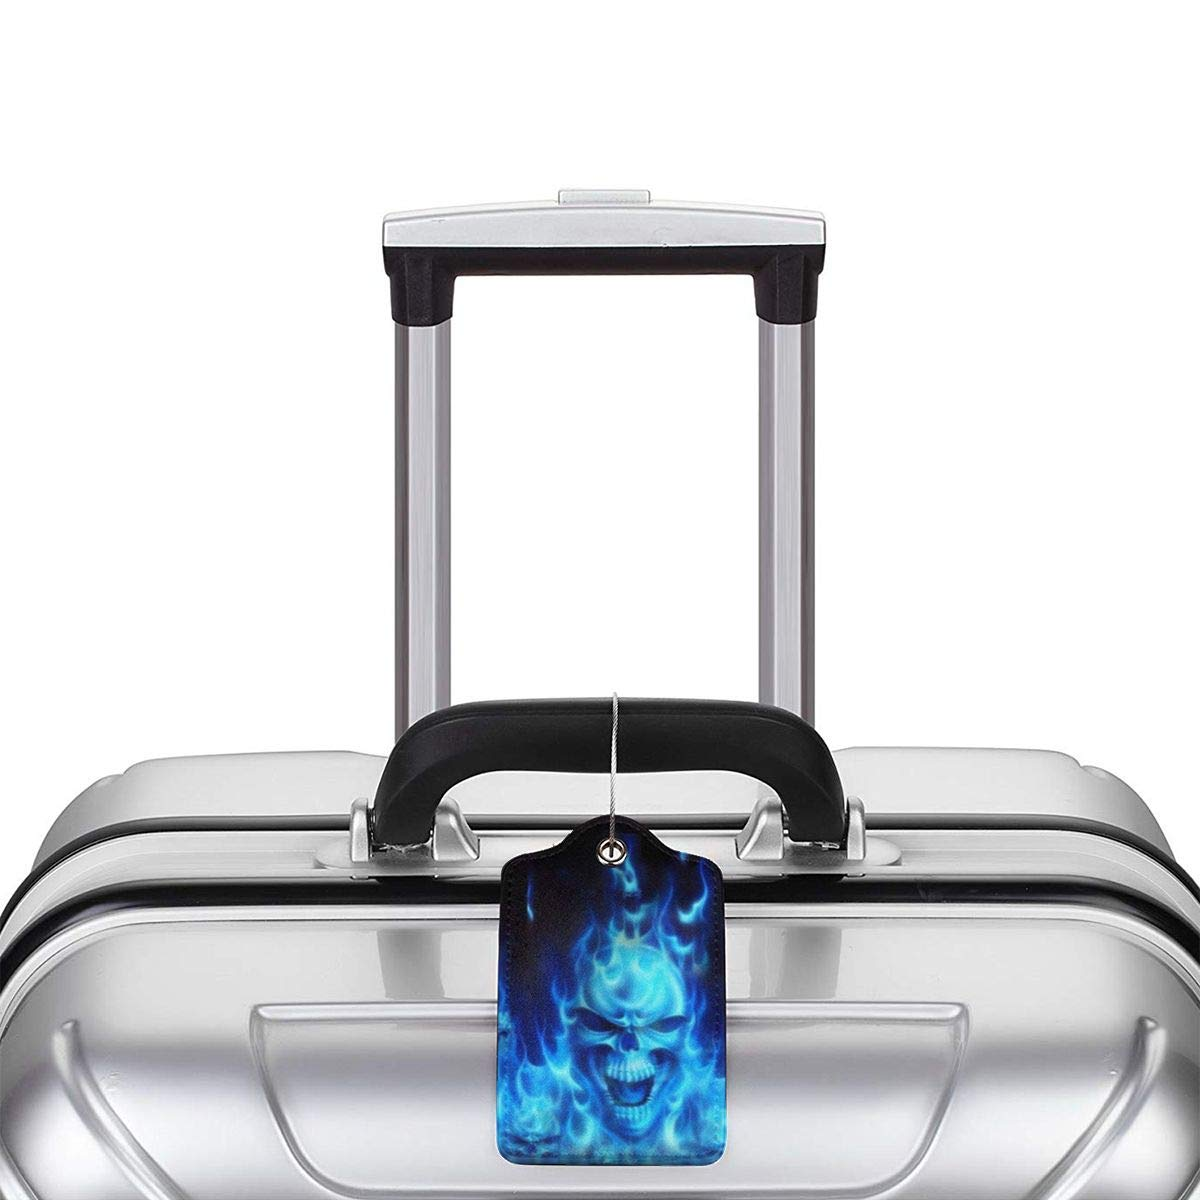 Flame Skull Luggage Tag Label Travel Bag Label With Privacy Cover Luggage Tag Leather Personalized Suitcase Tag Travel Accessories